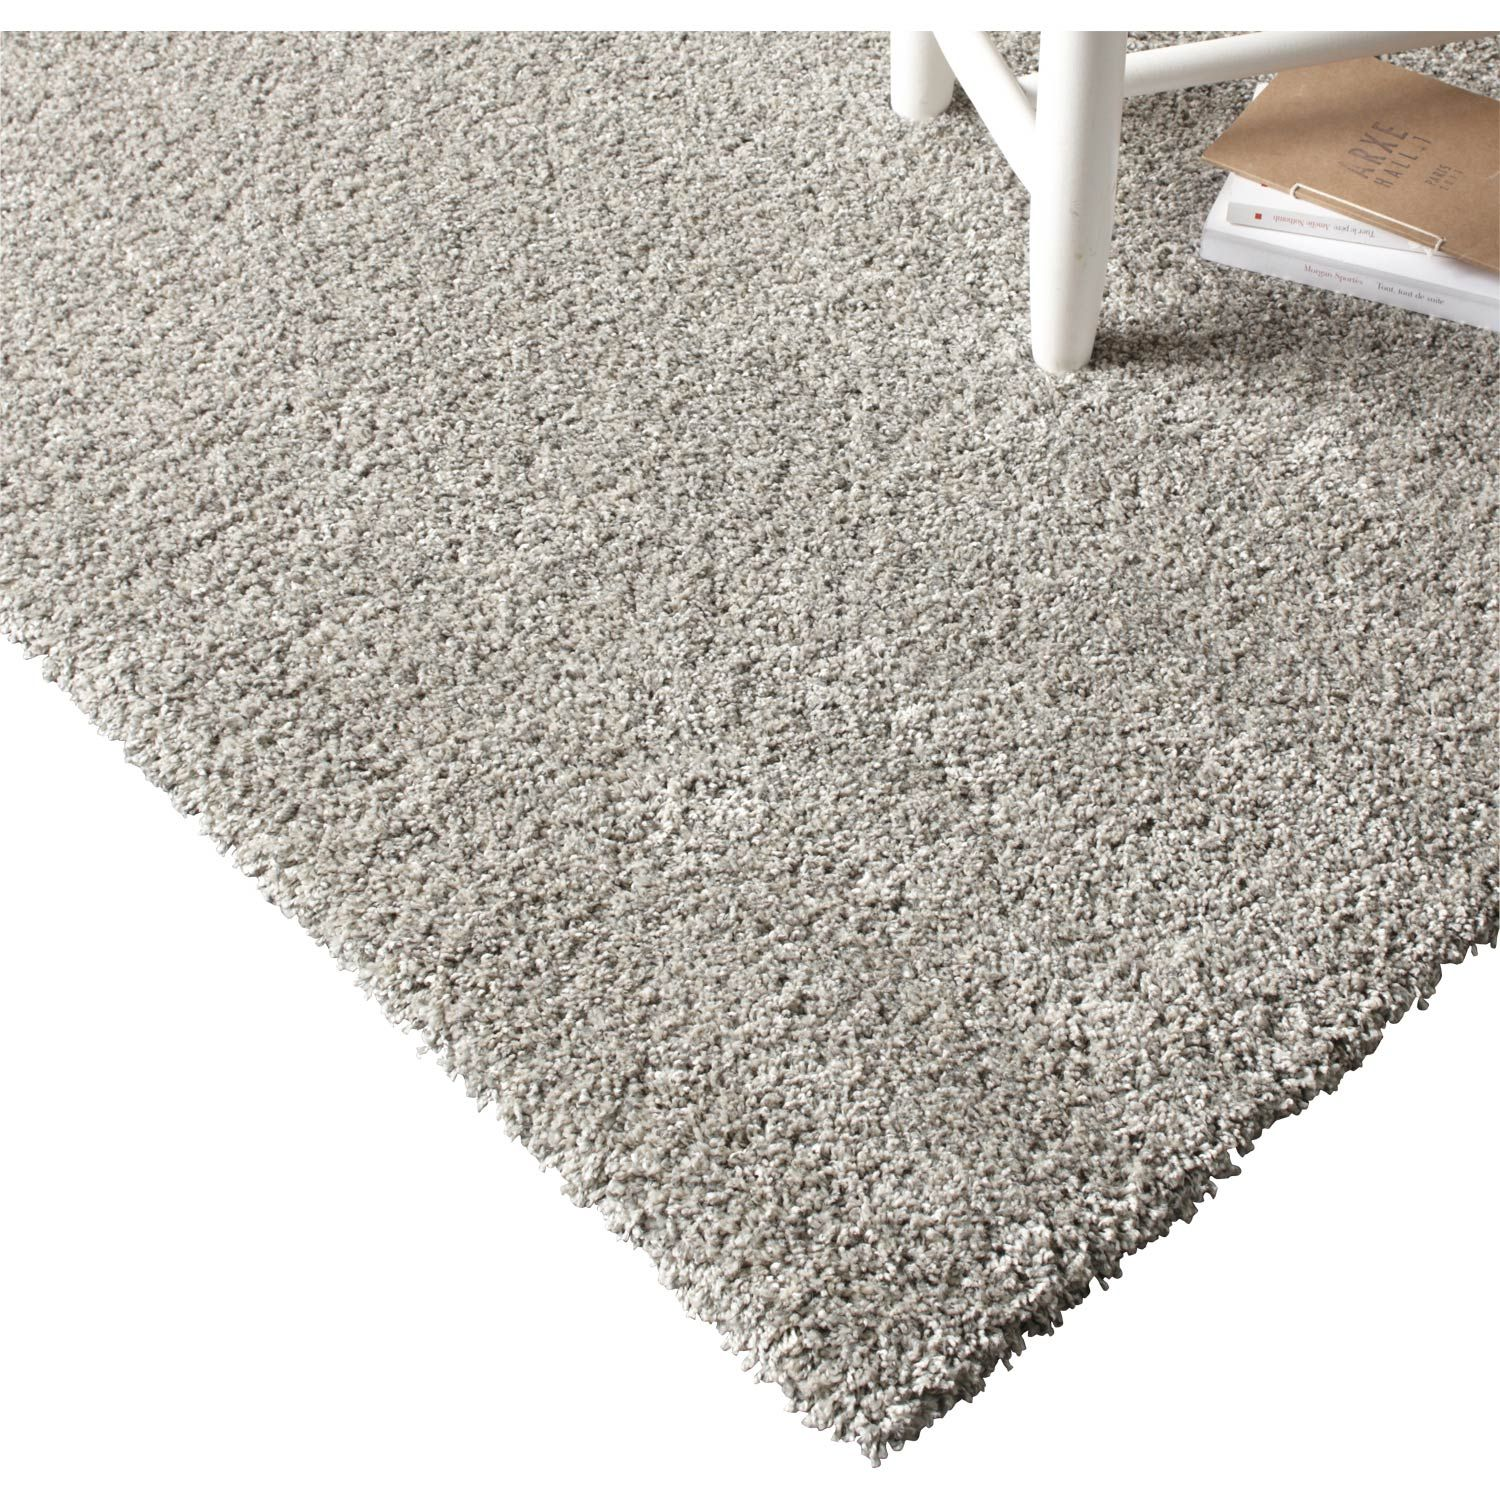 Inspirant Petit Tapis Gris Decoration Francaise In 2019 Rugs